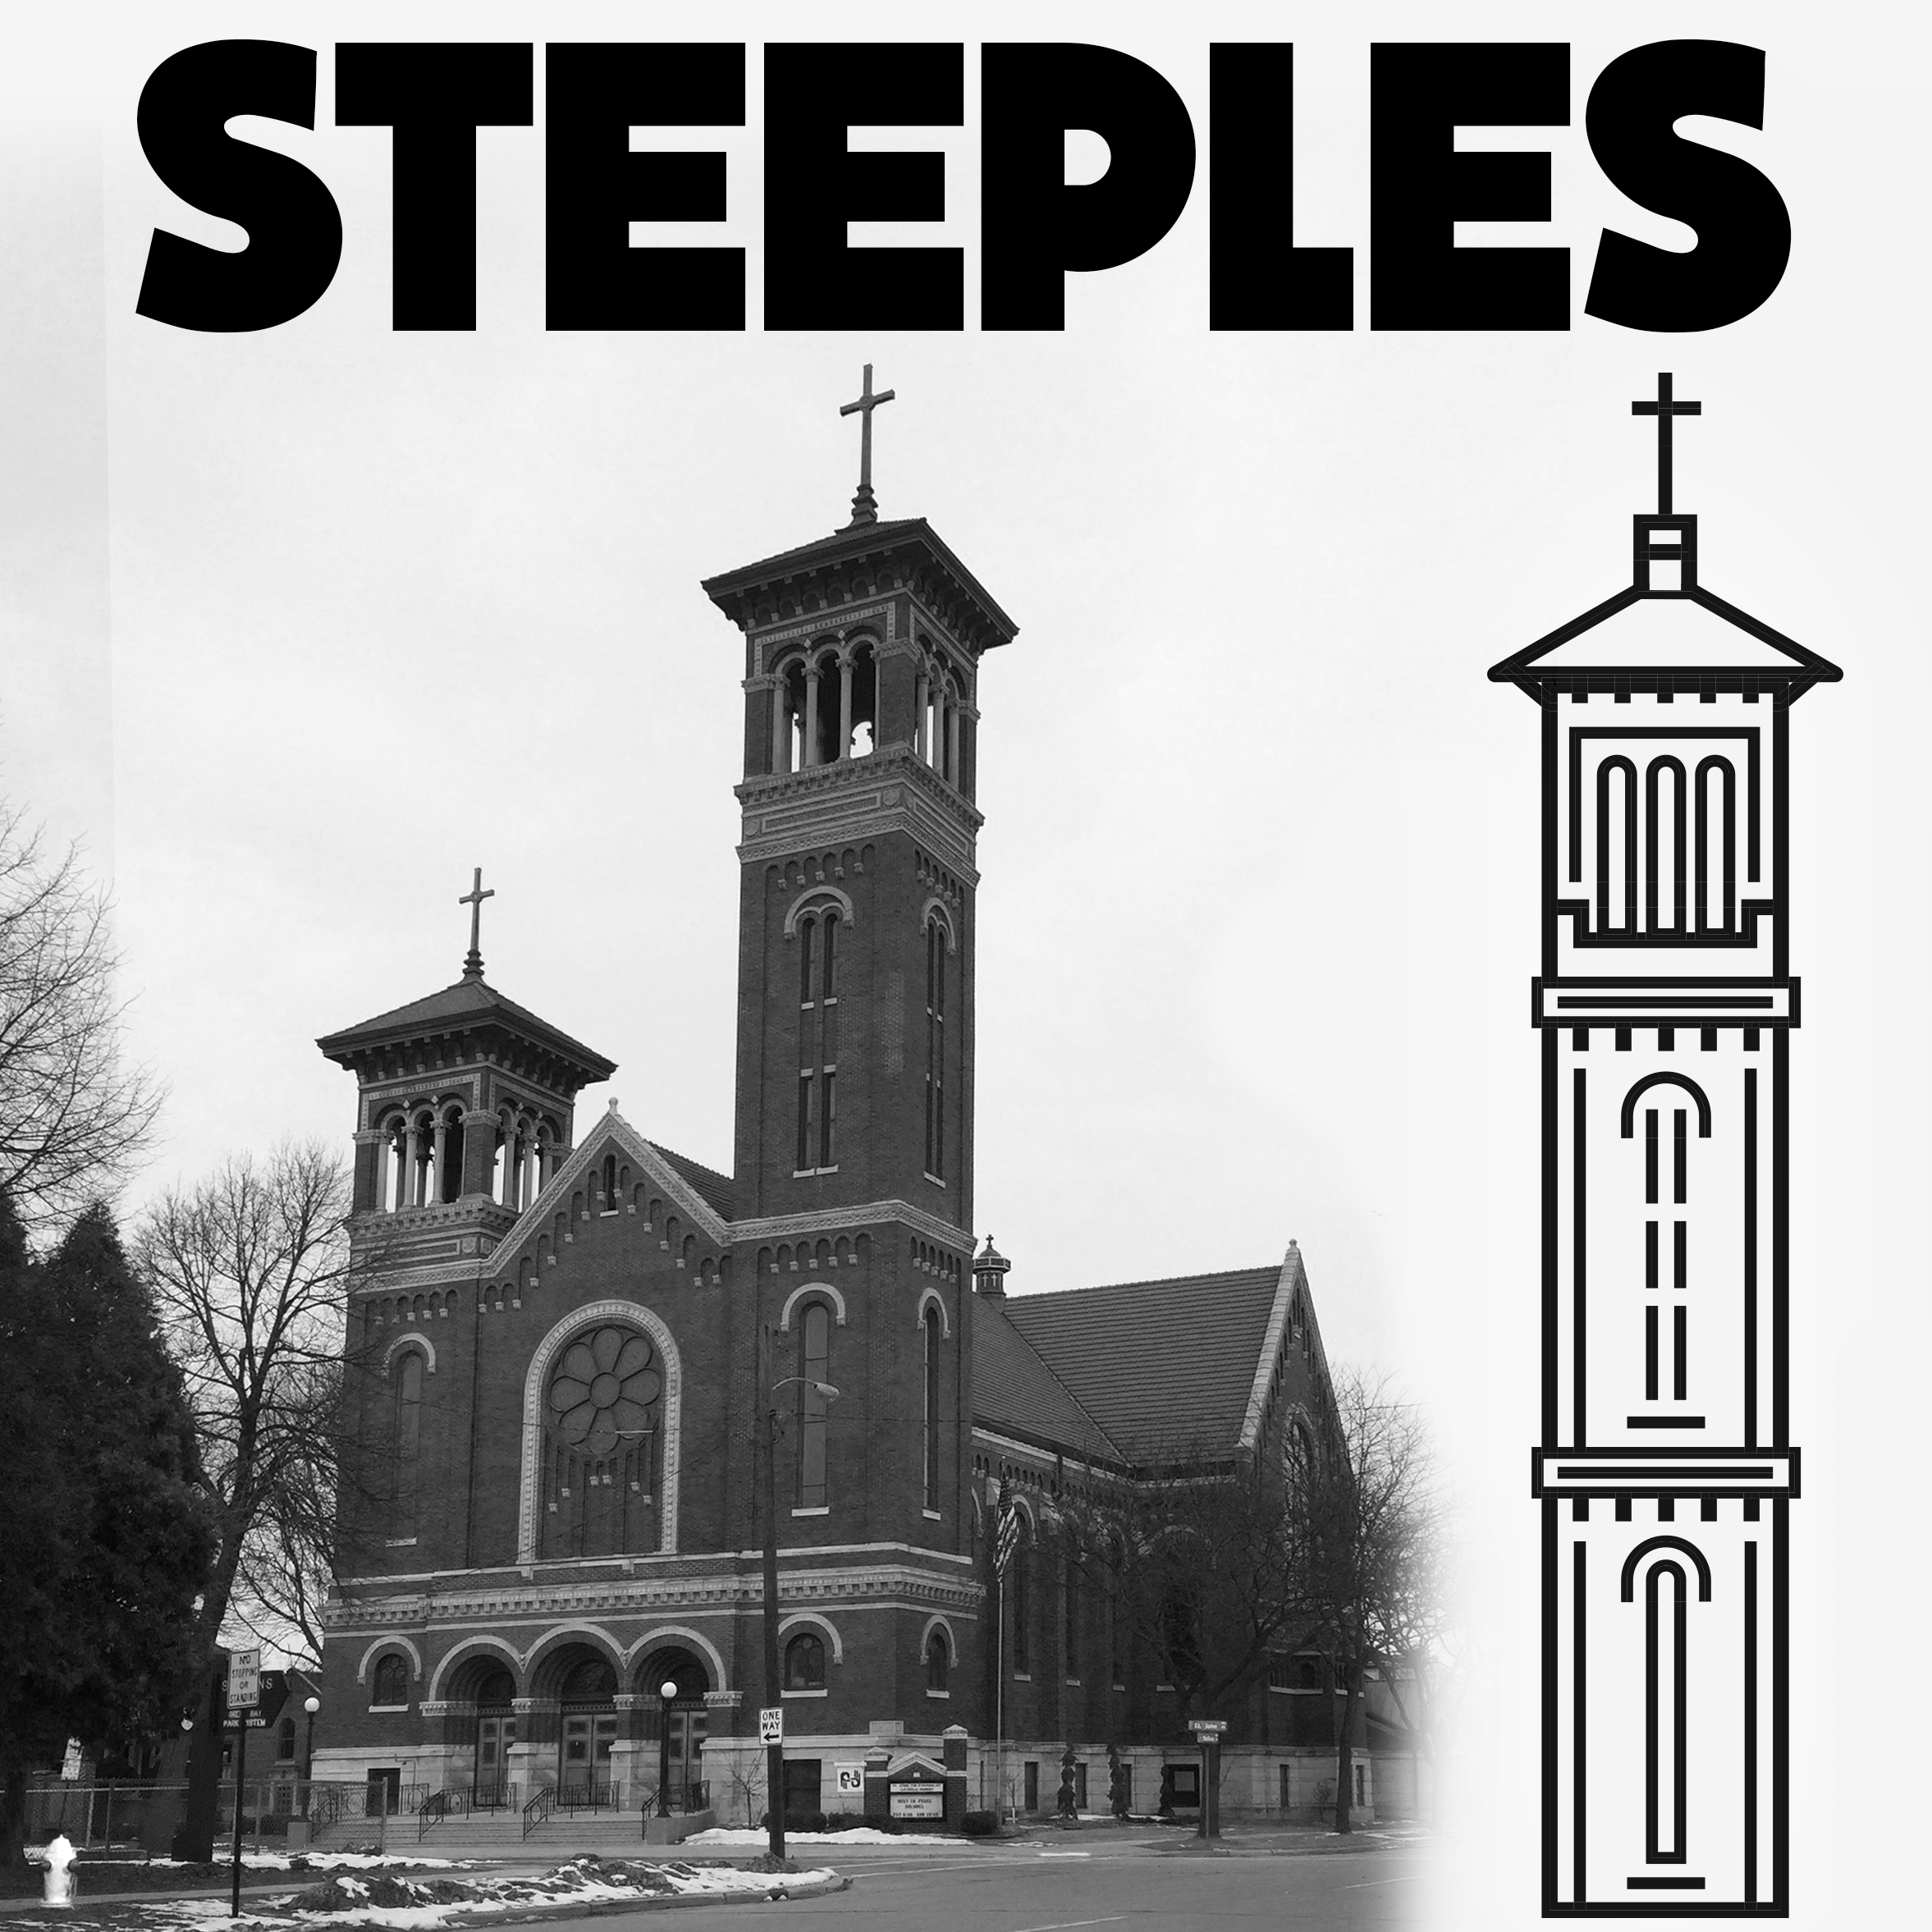 Steeple_icon-ref_post.png